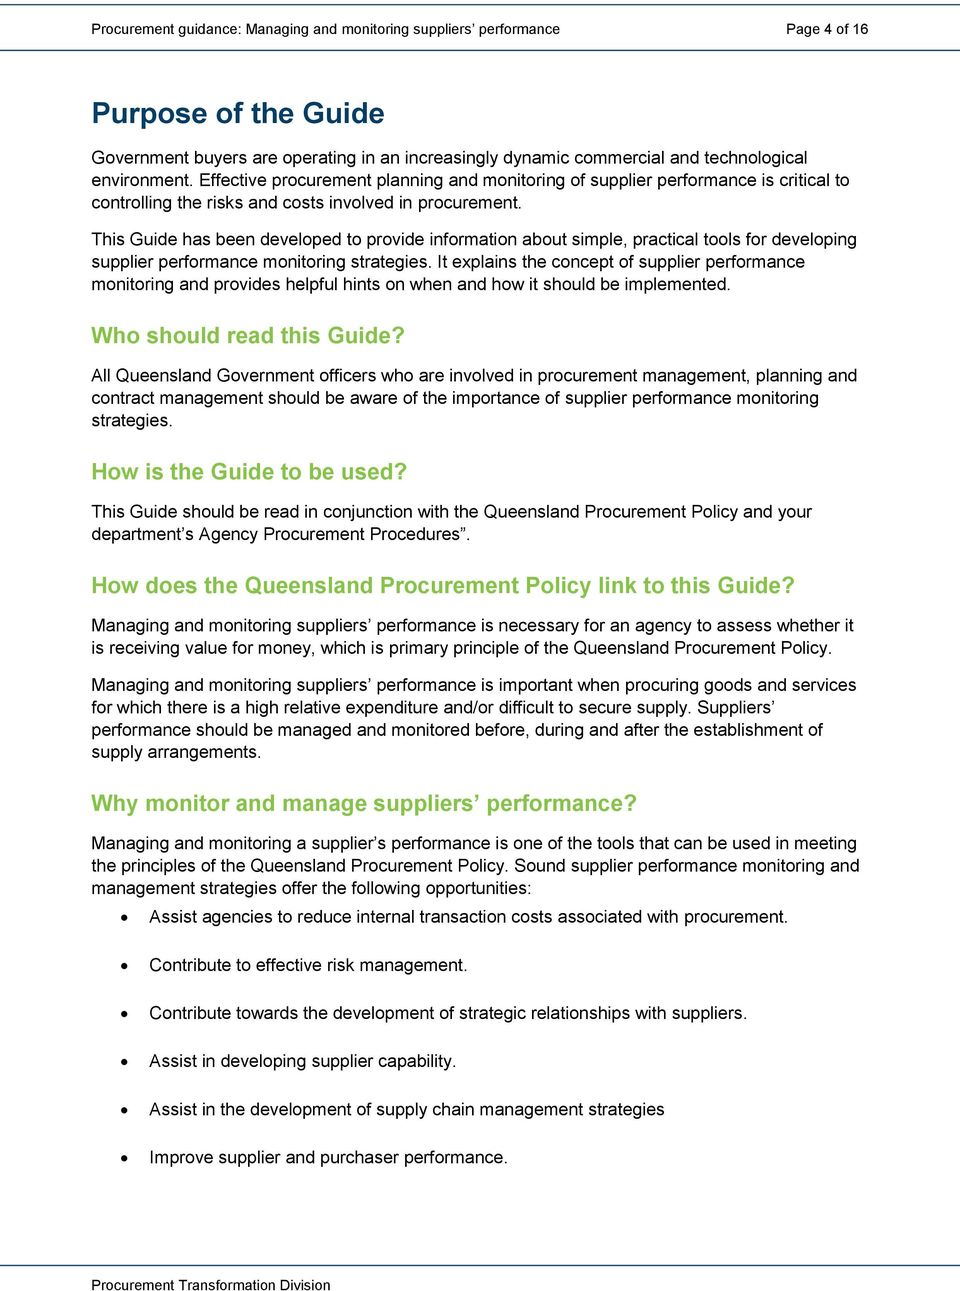 Procurement guidance Managing and monitoring suppliers performance - PDF